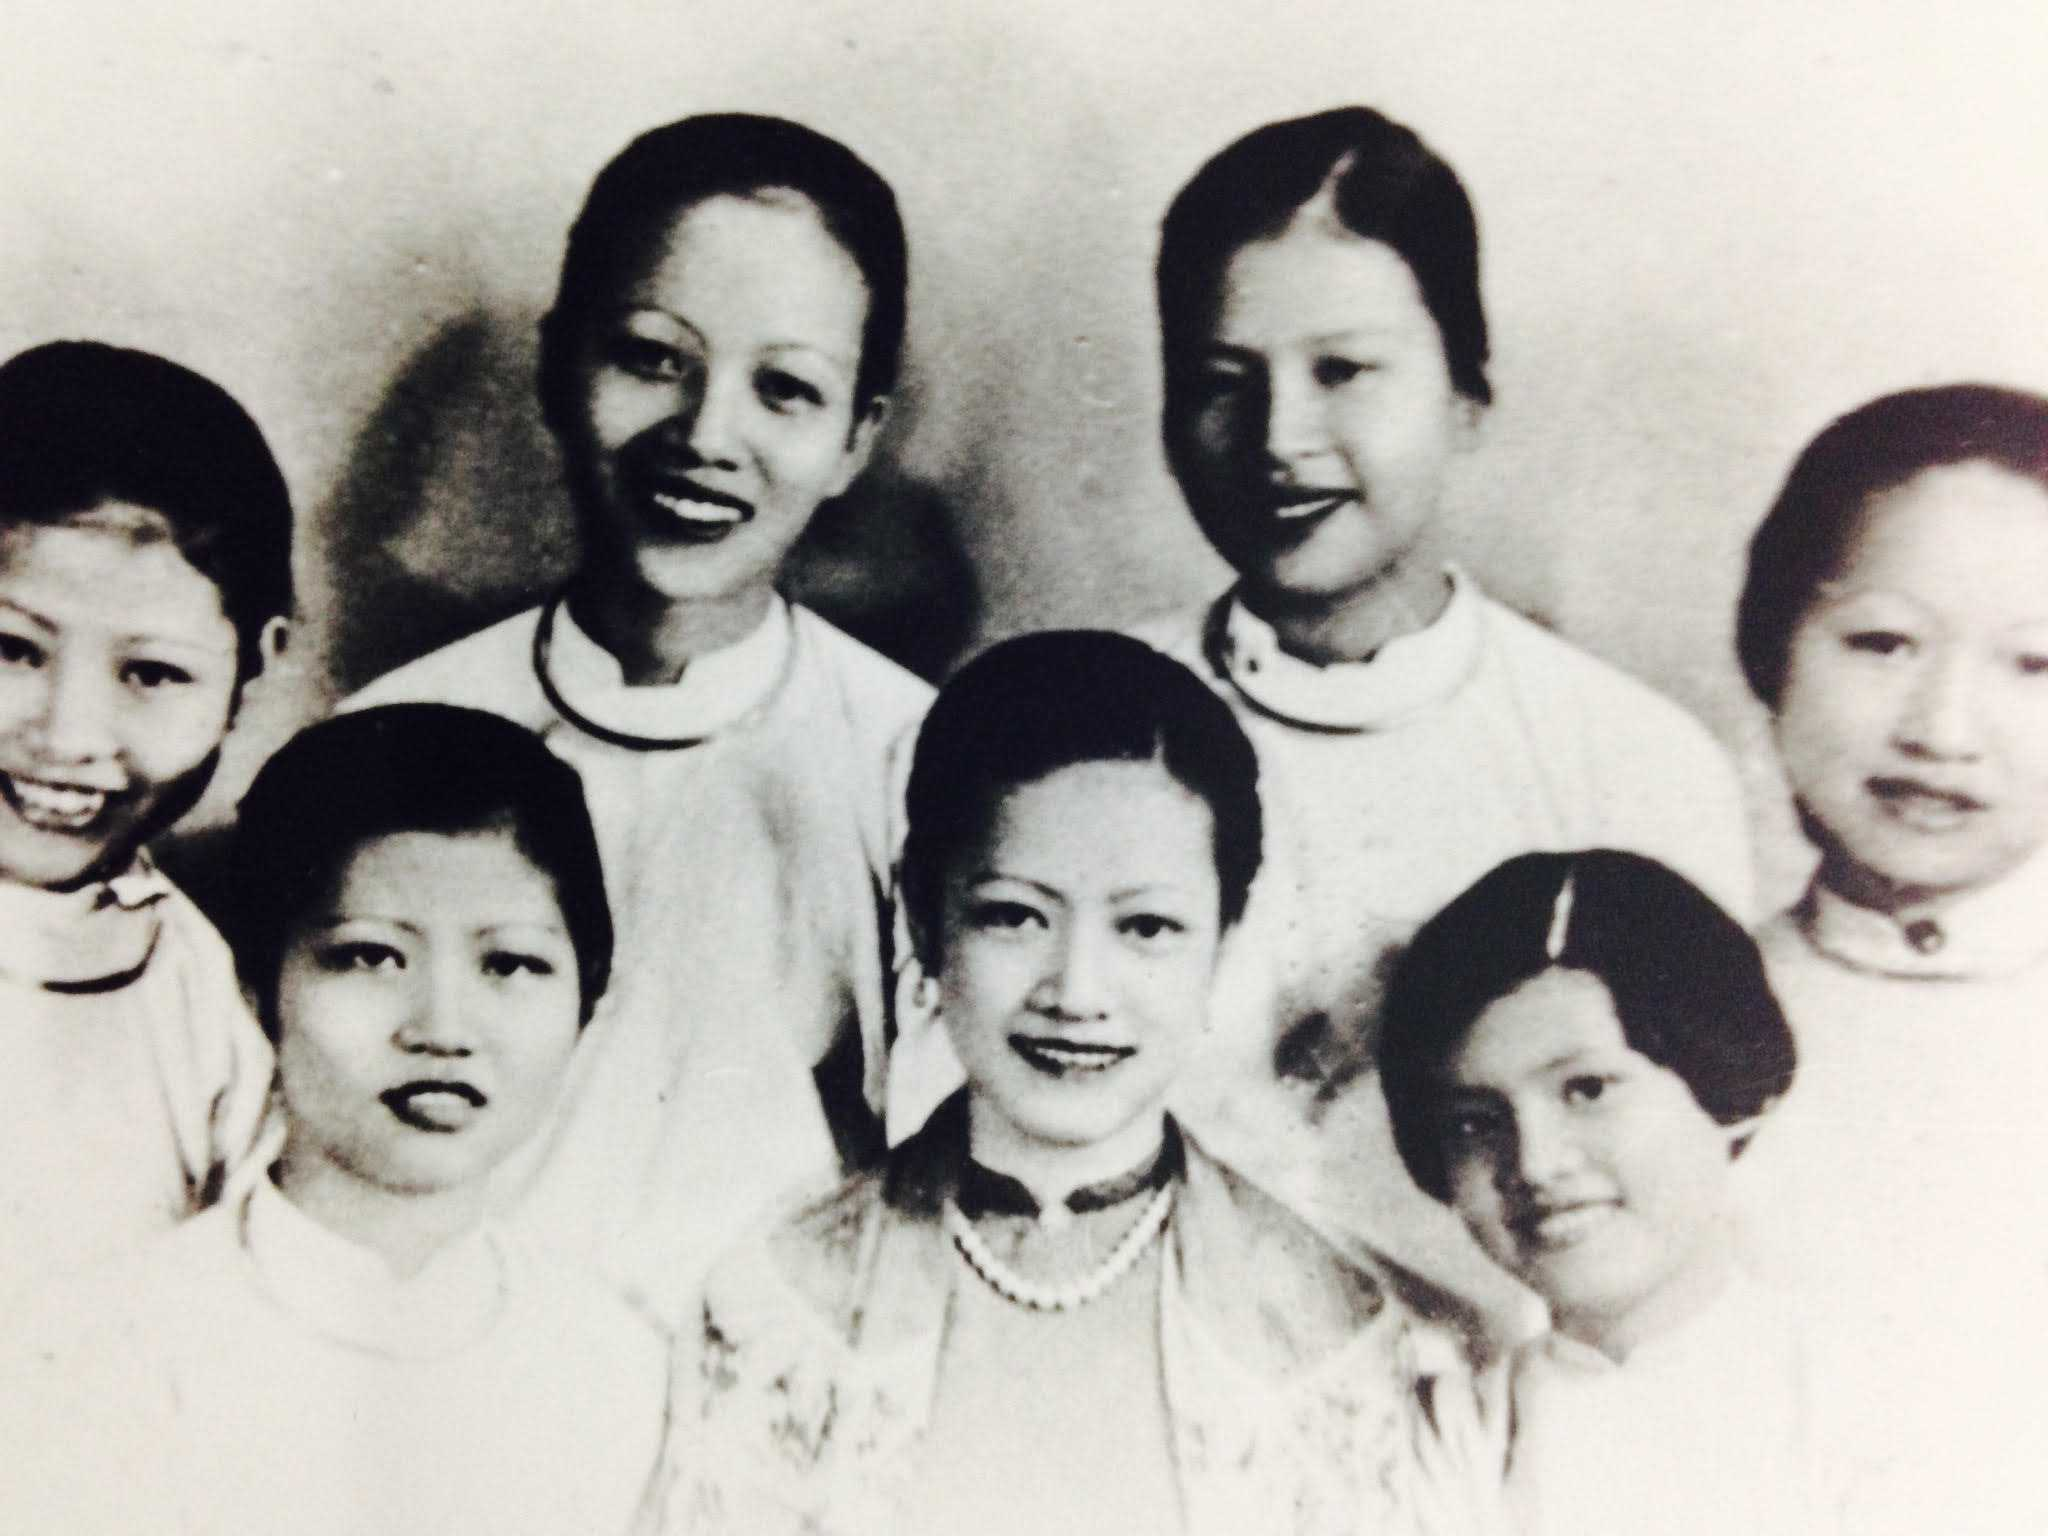 Ton Nu's mother (bottom row, second from left) and aunts gather on Ton Nu's mother's wedding day.